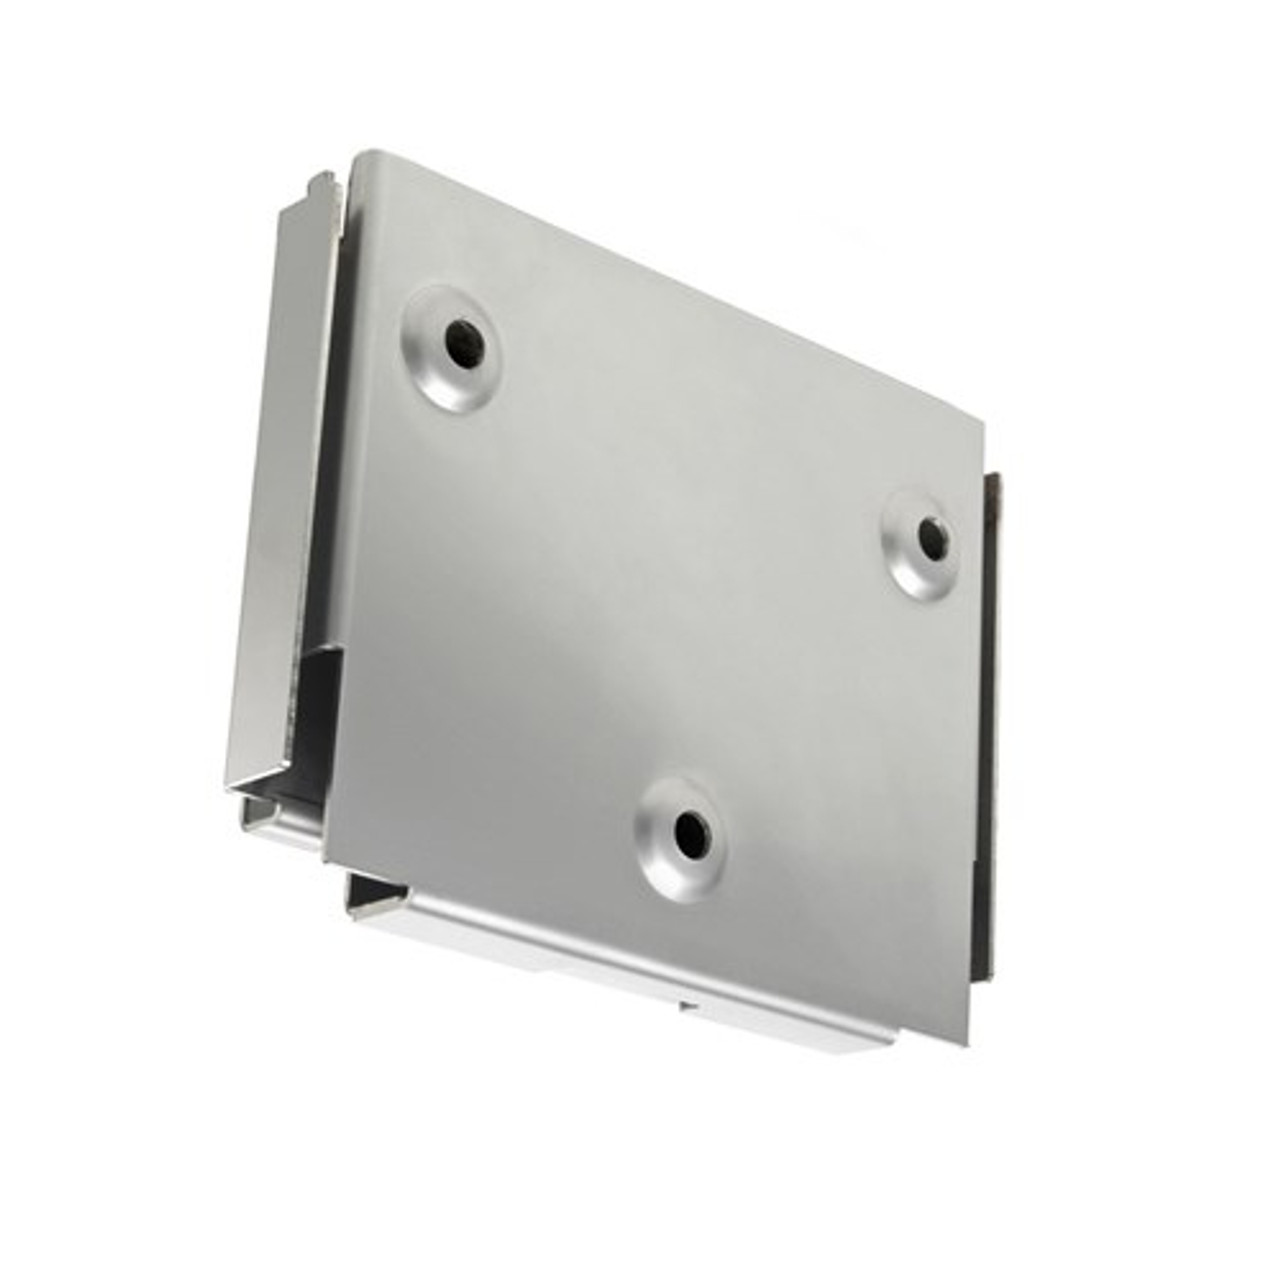 Stainless Steel wall mounting plate for Dab Esybox and Esybox mini